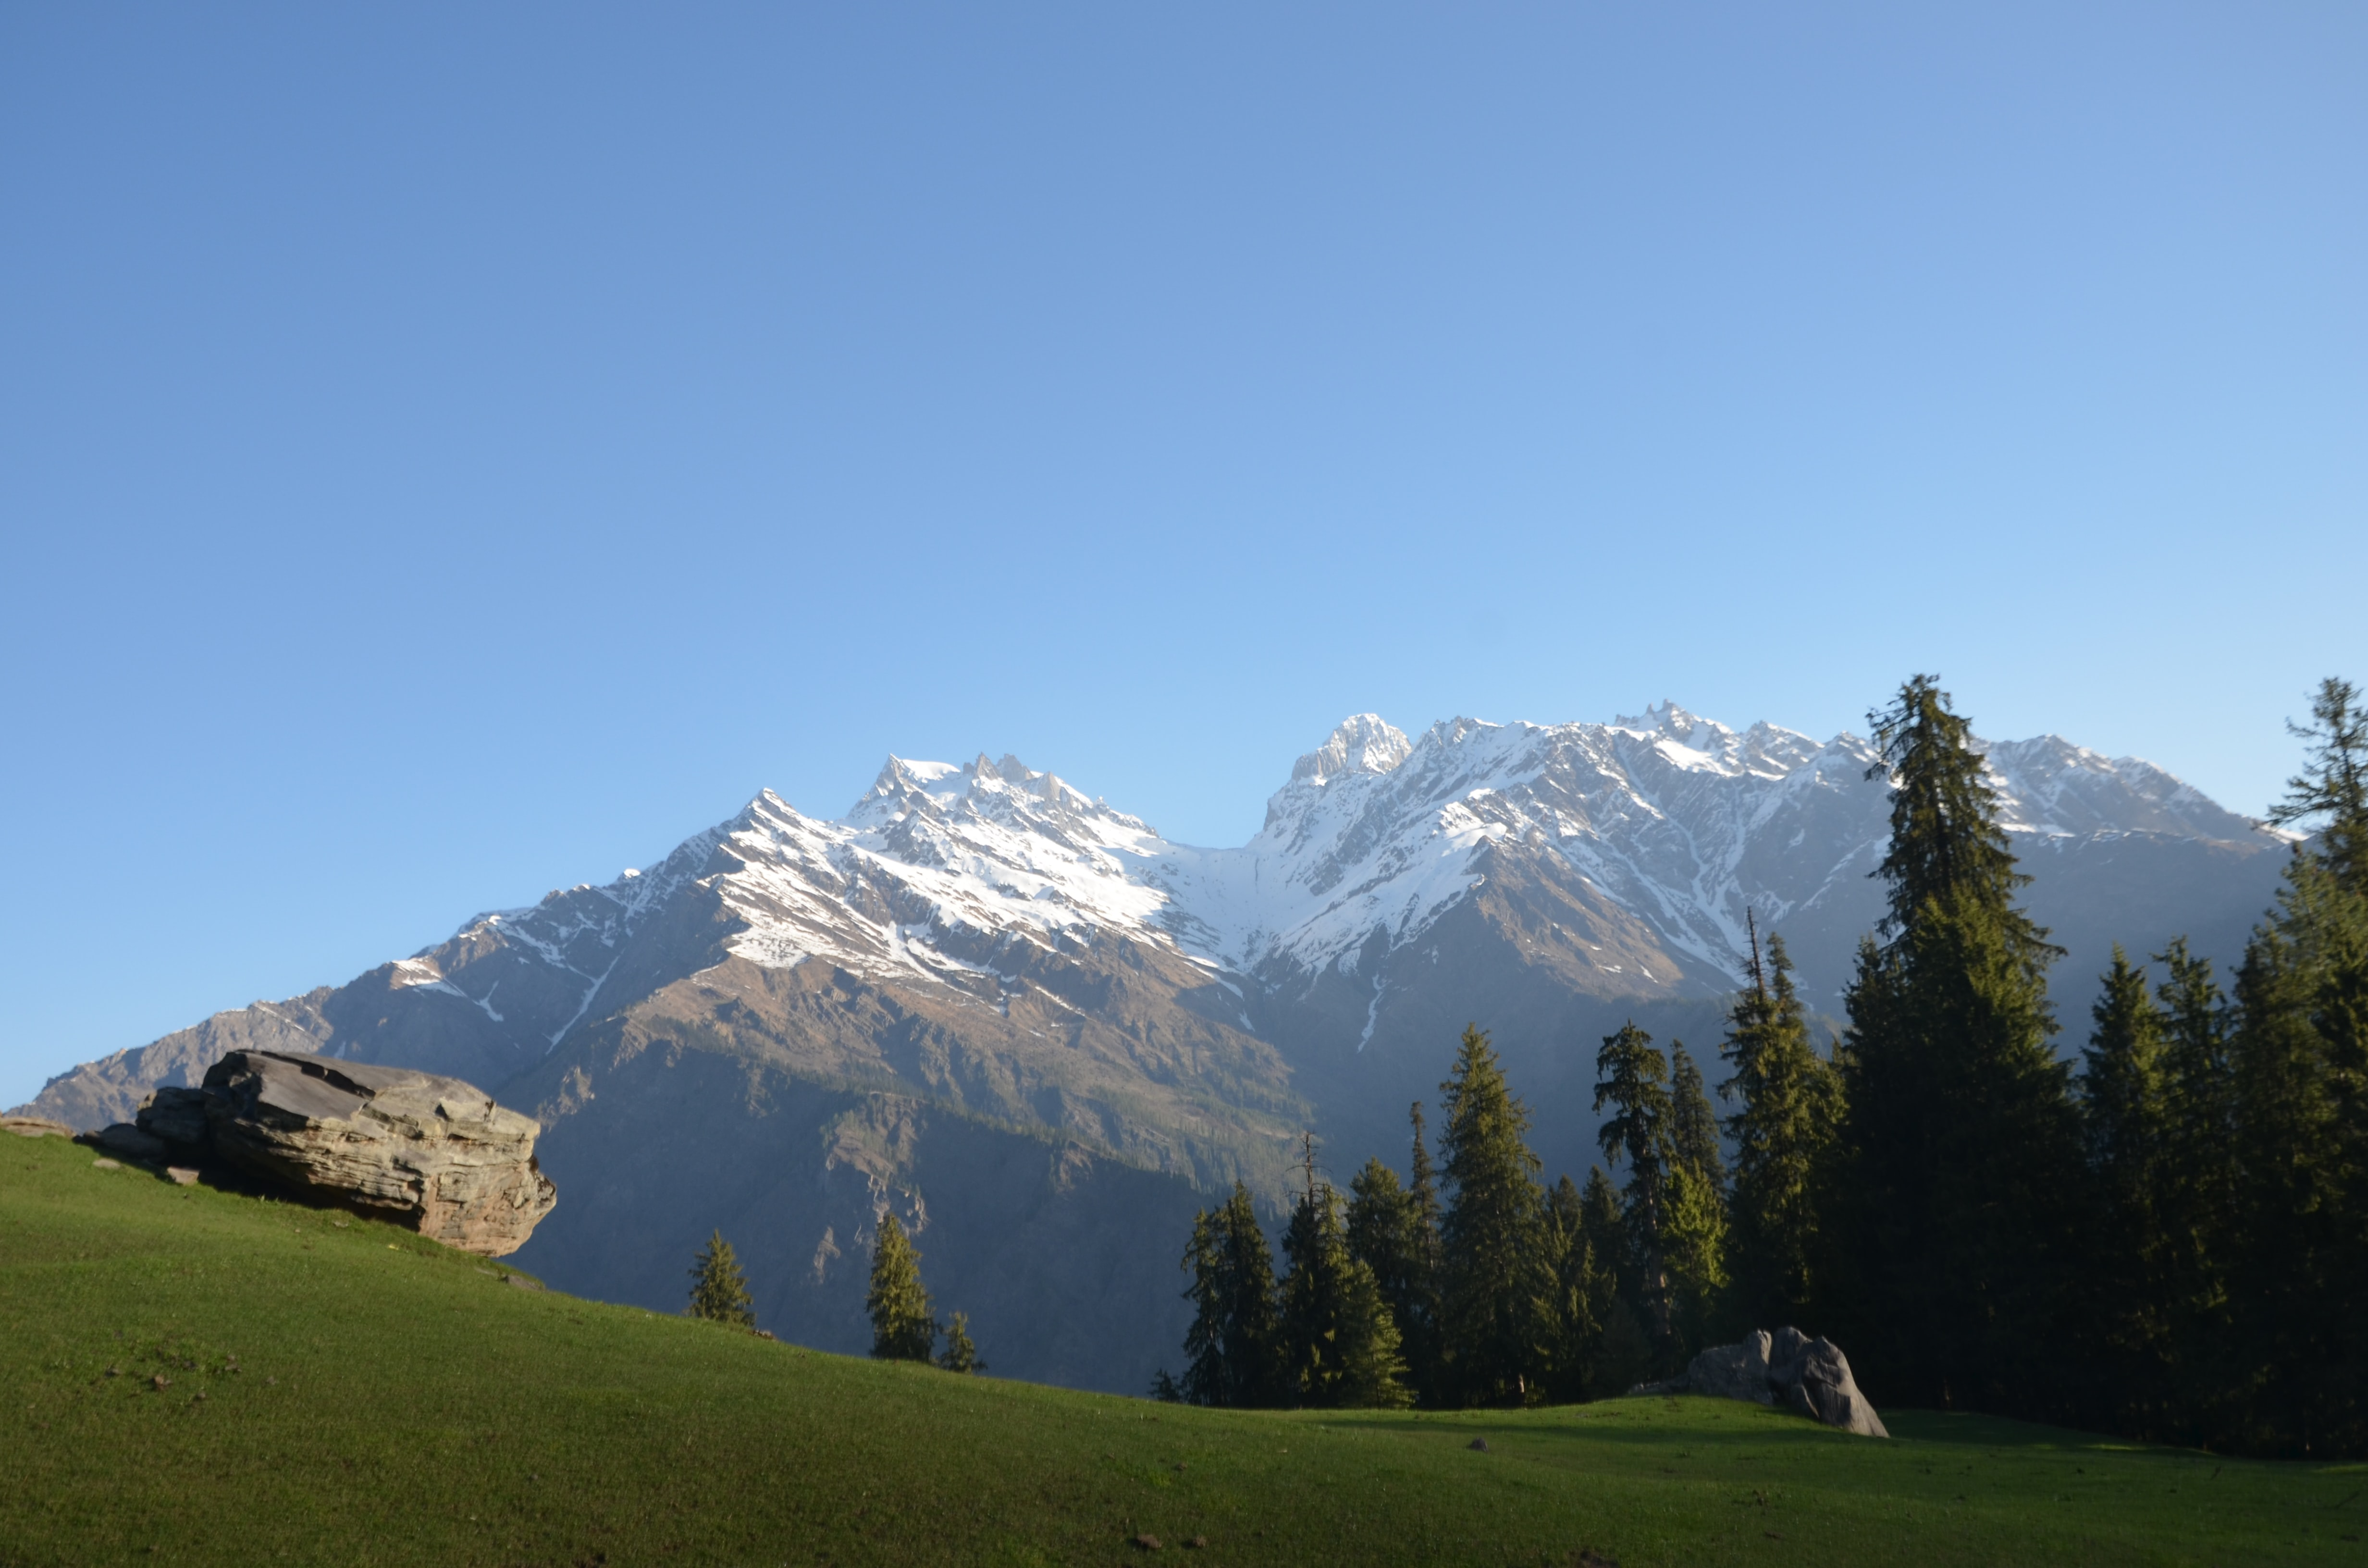 A large boulder in a green meadow at the foot of snowy mountains in Kasol